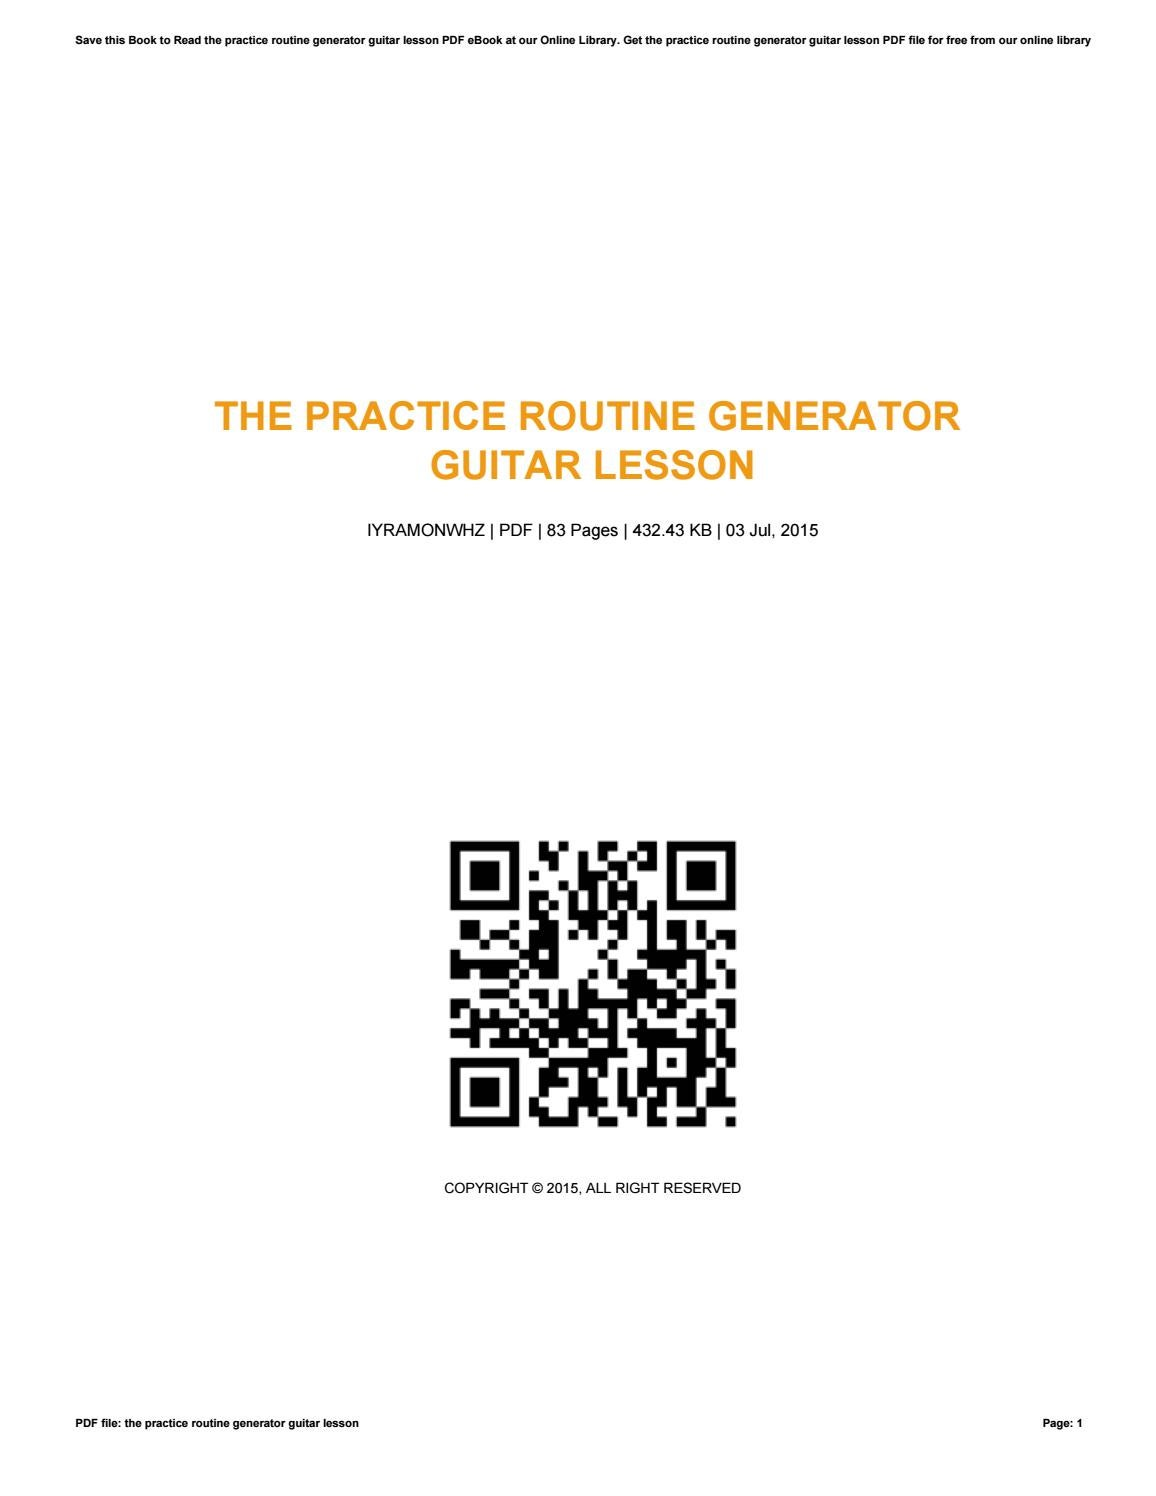 The practice routine generator guitar lesson by dorothyleslie3159 issuu